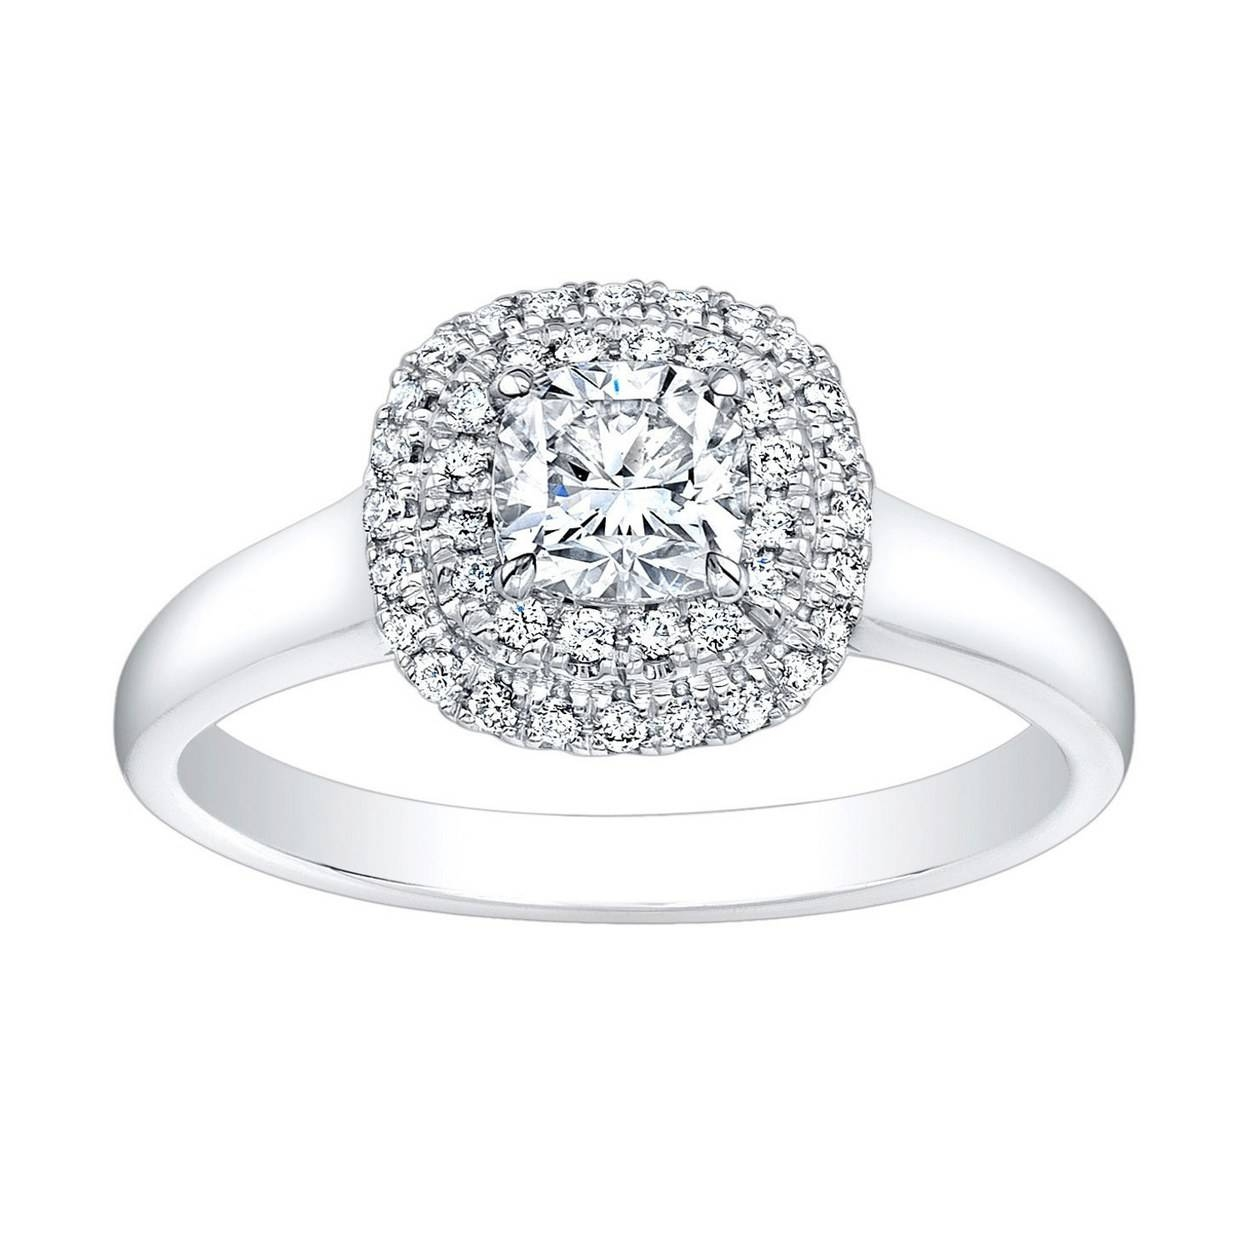 62 Diamond Engagement Rings Under $5,000 | Glamour Regarding Pave Diamond Wedding Rings (View 11 of 15)